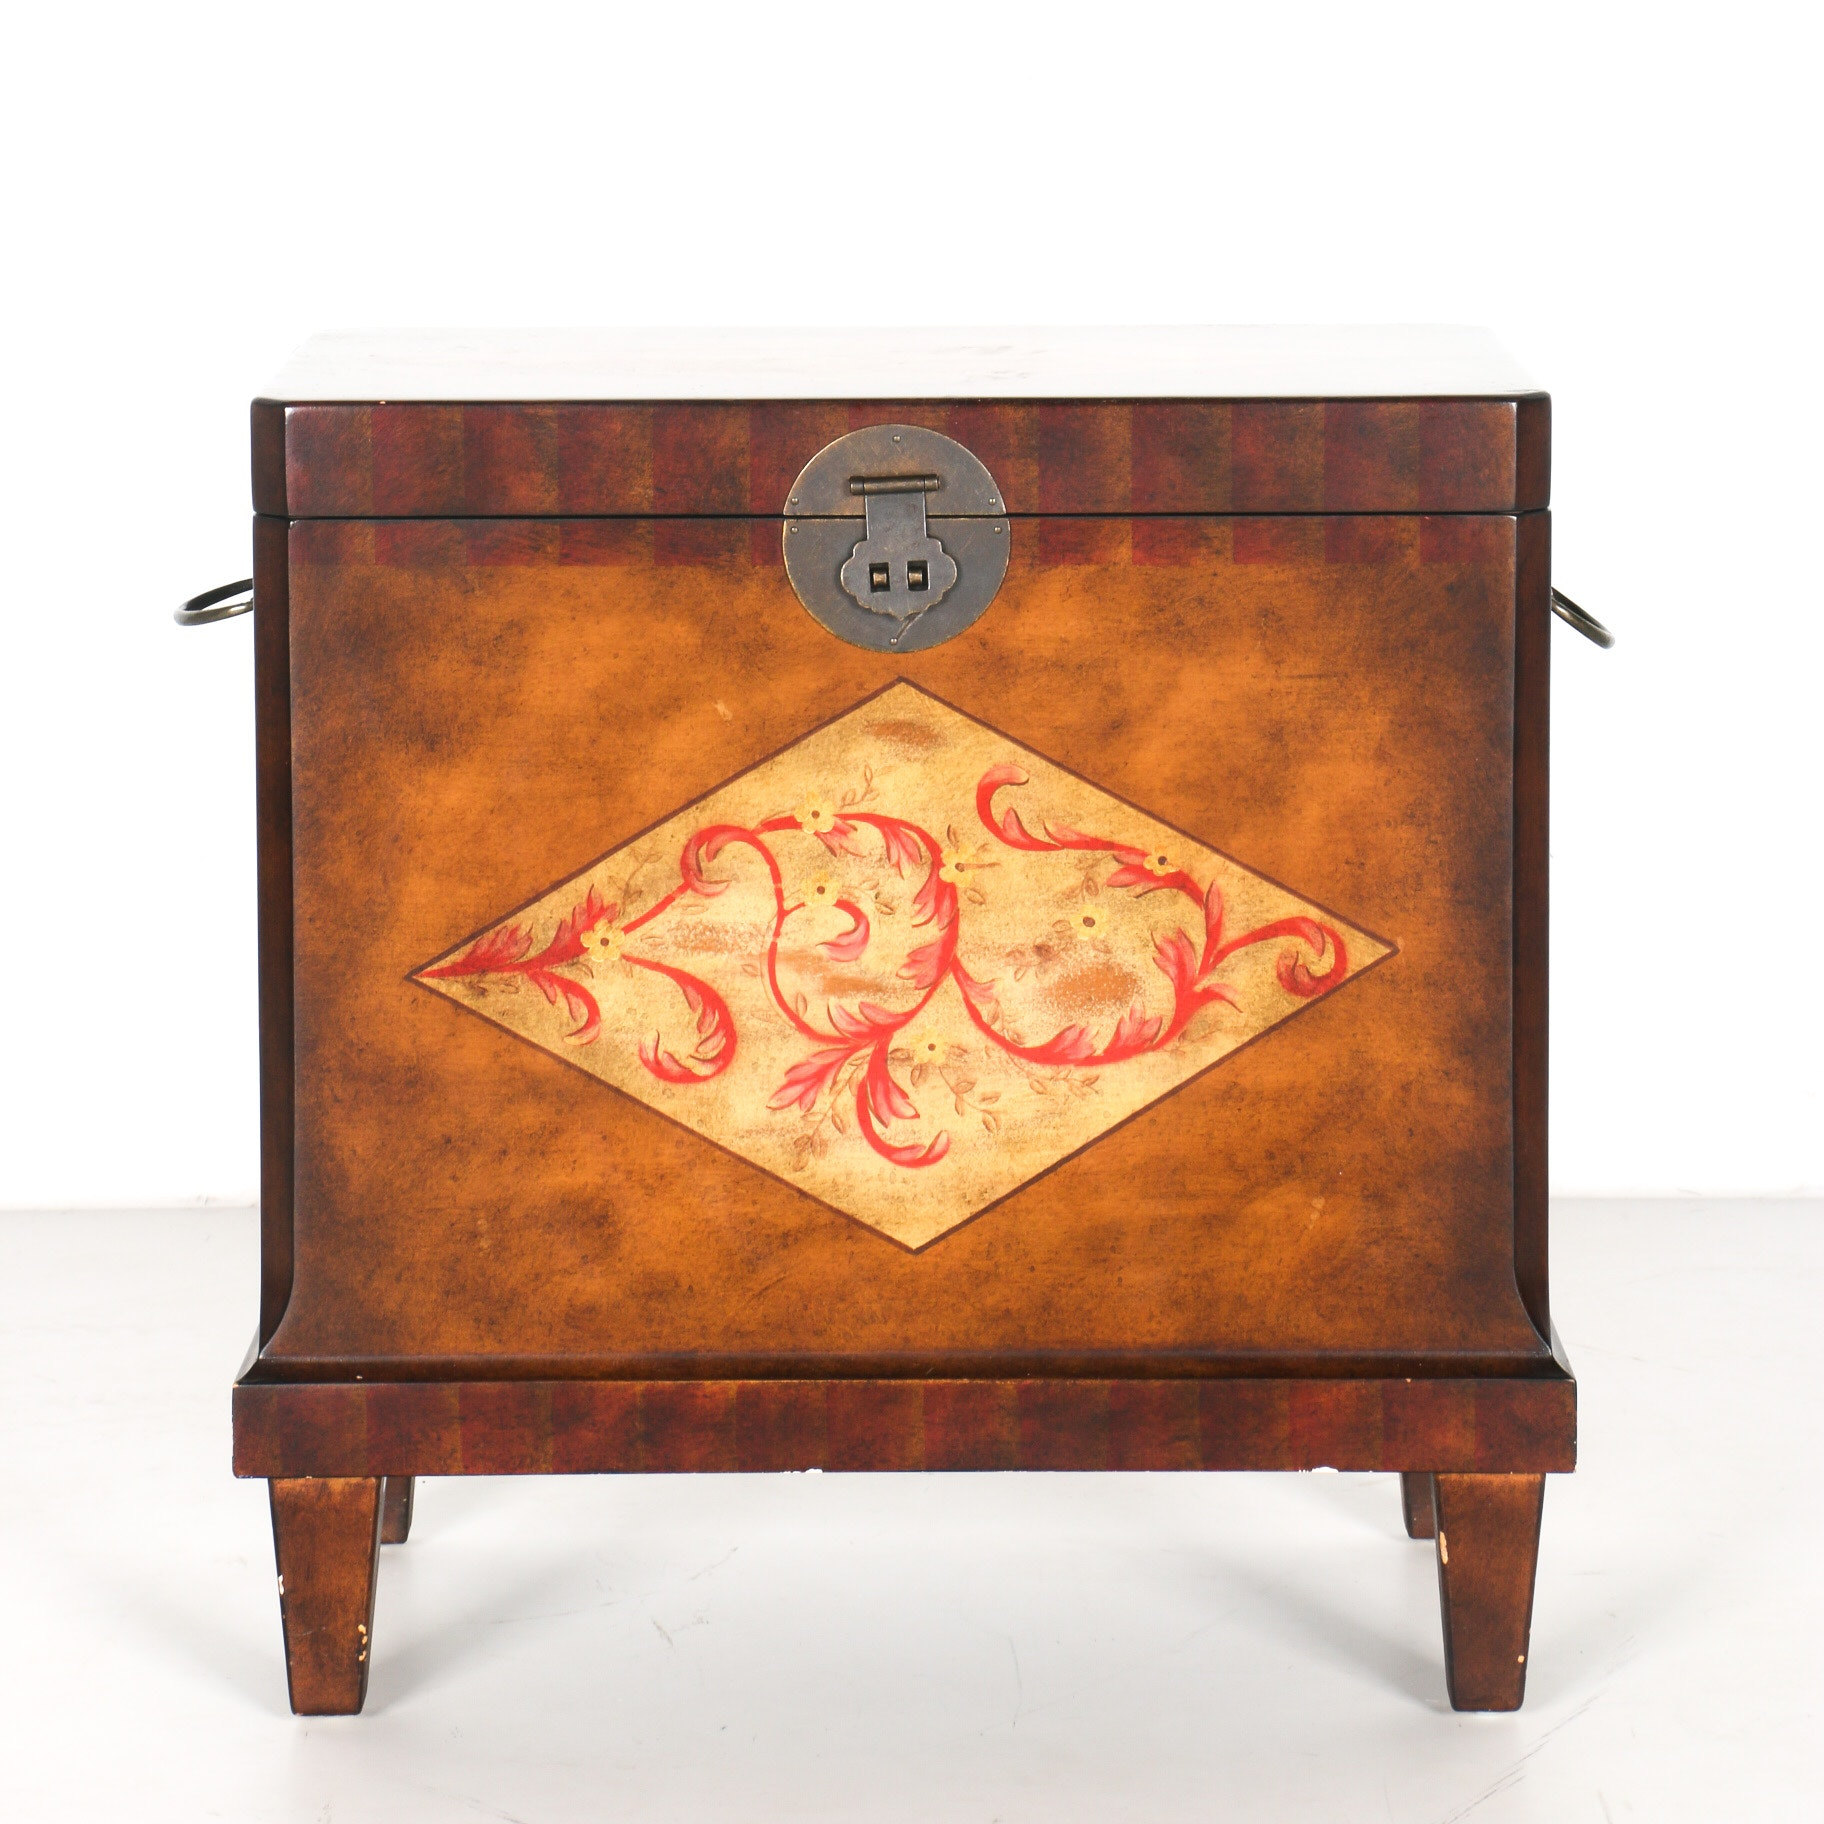 Furniture Auctions Online Antique Furniture Auctions In